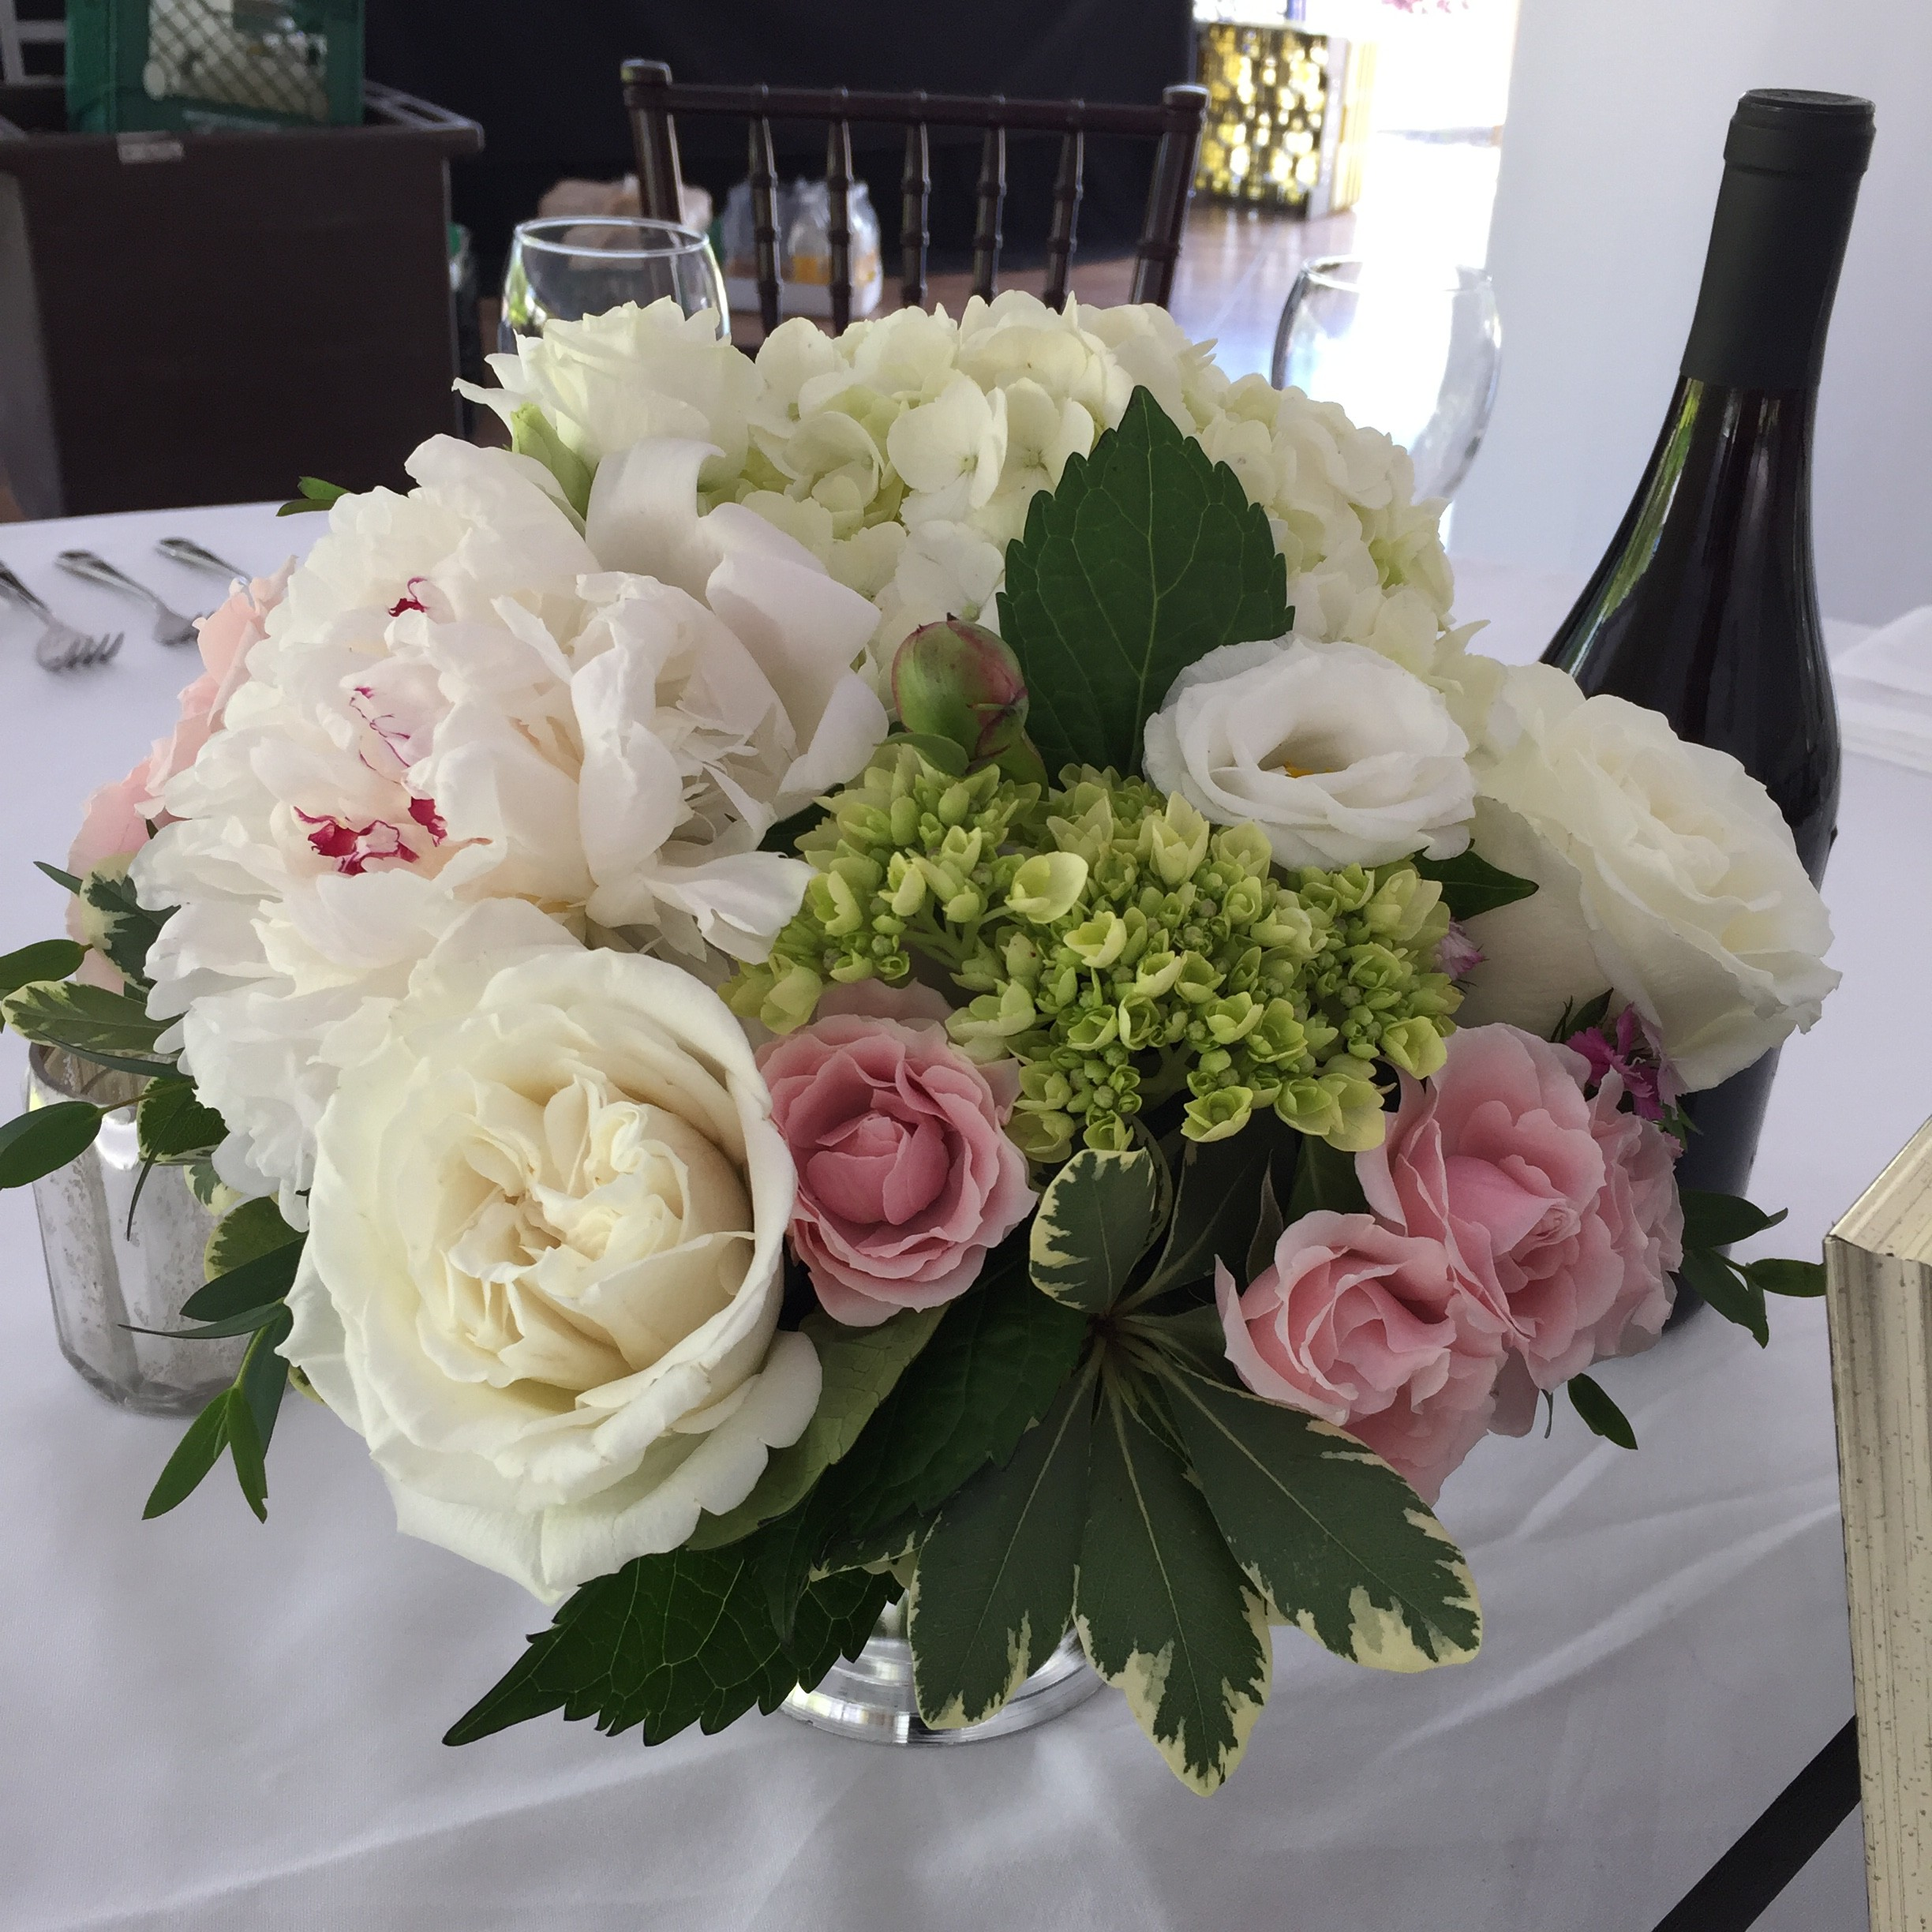 vermont wedding flowers peony centerpiece topnotch resort wedding